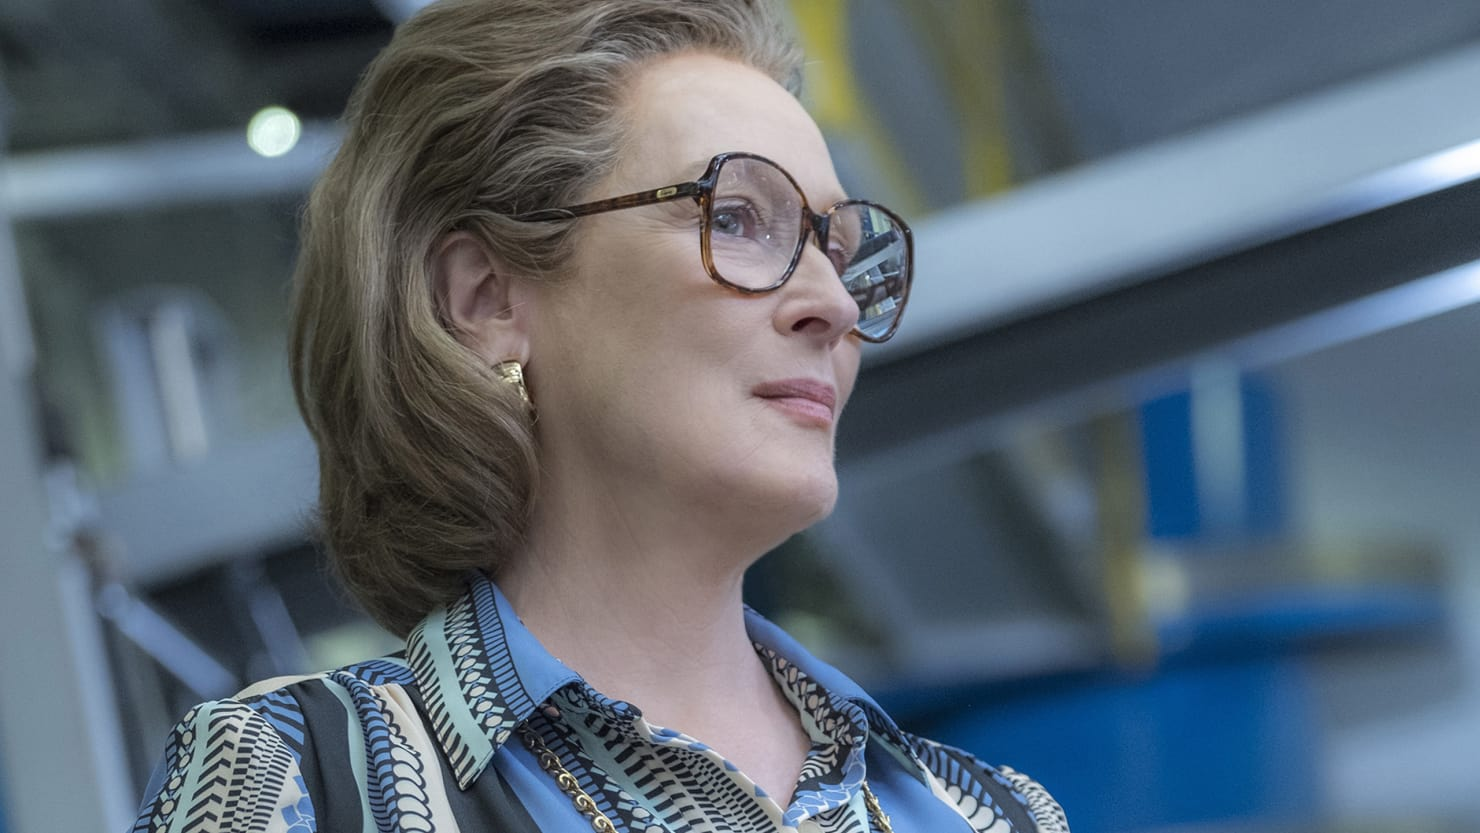 Meryl Streep in Steven Spielberg's The Post